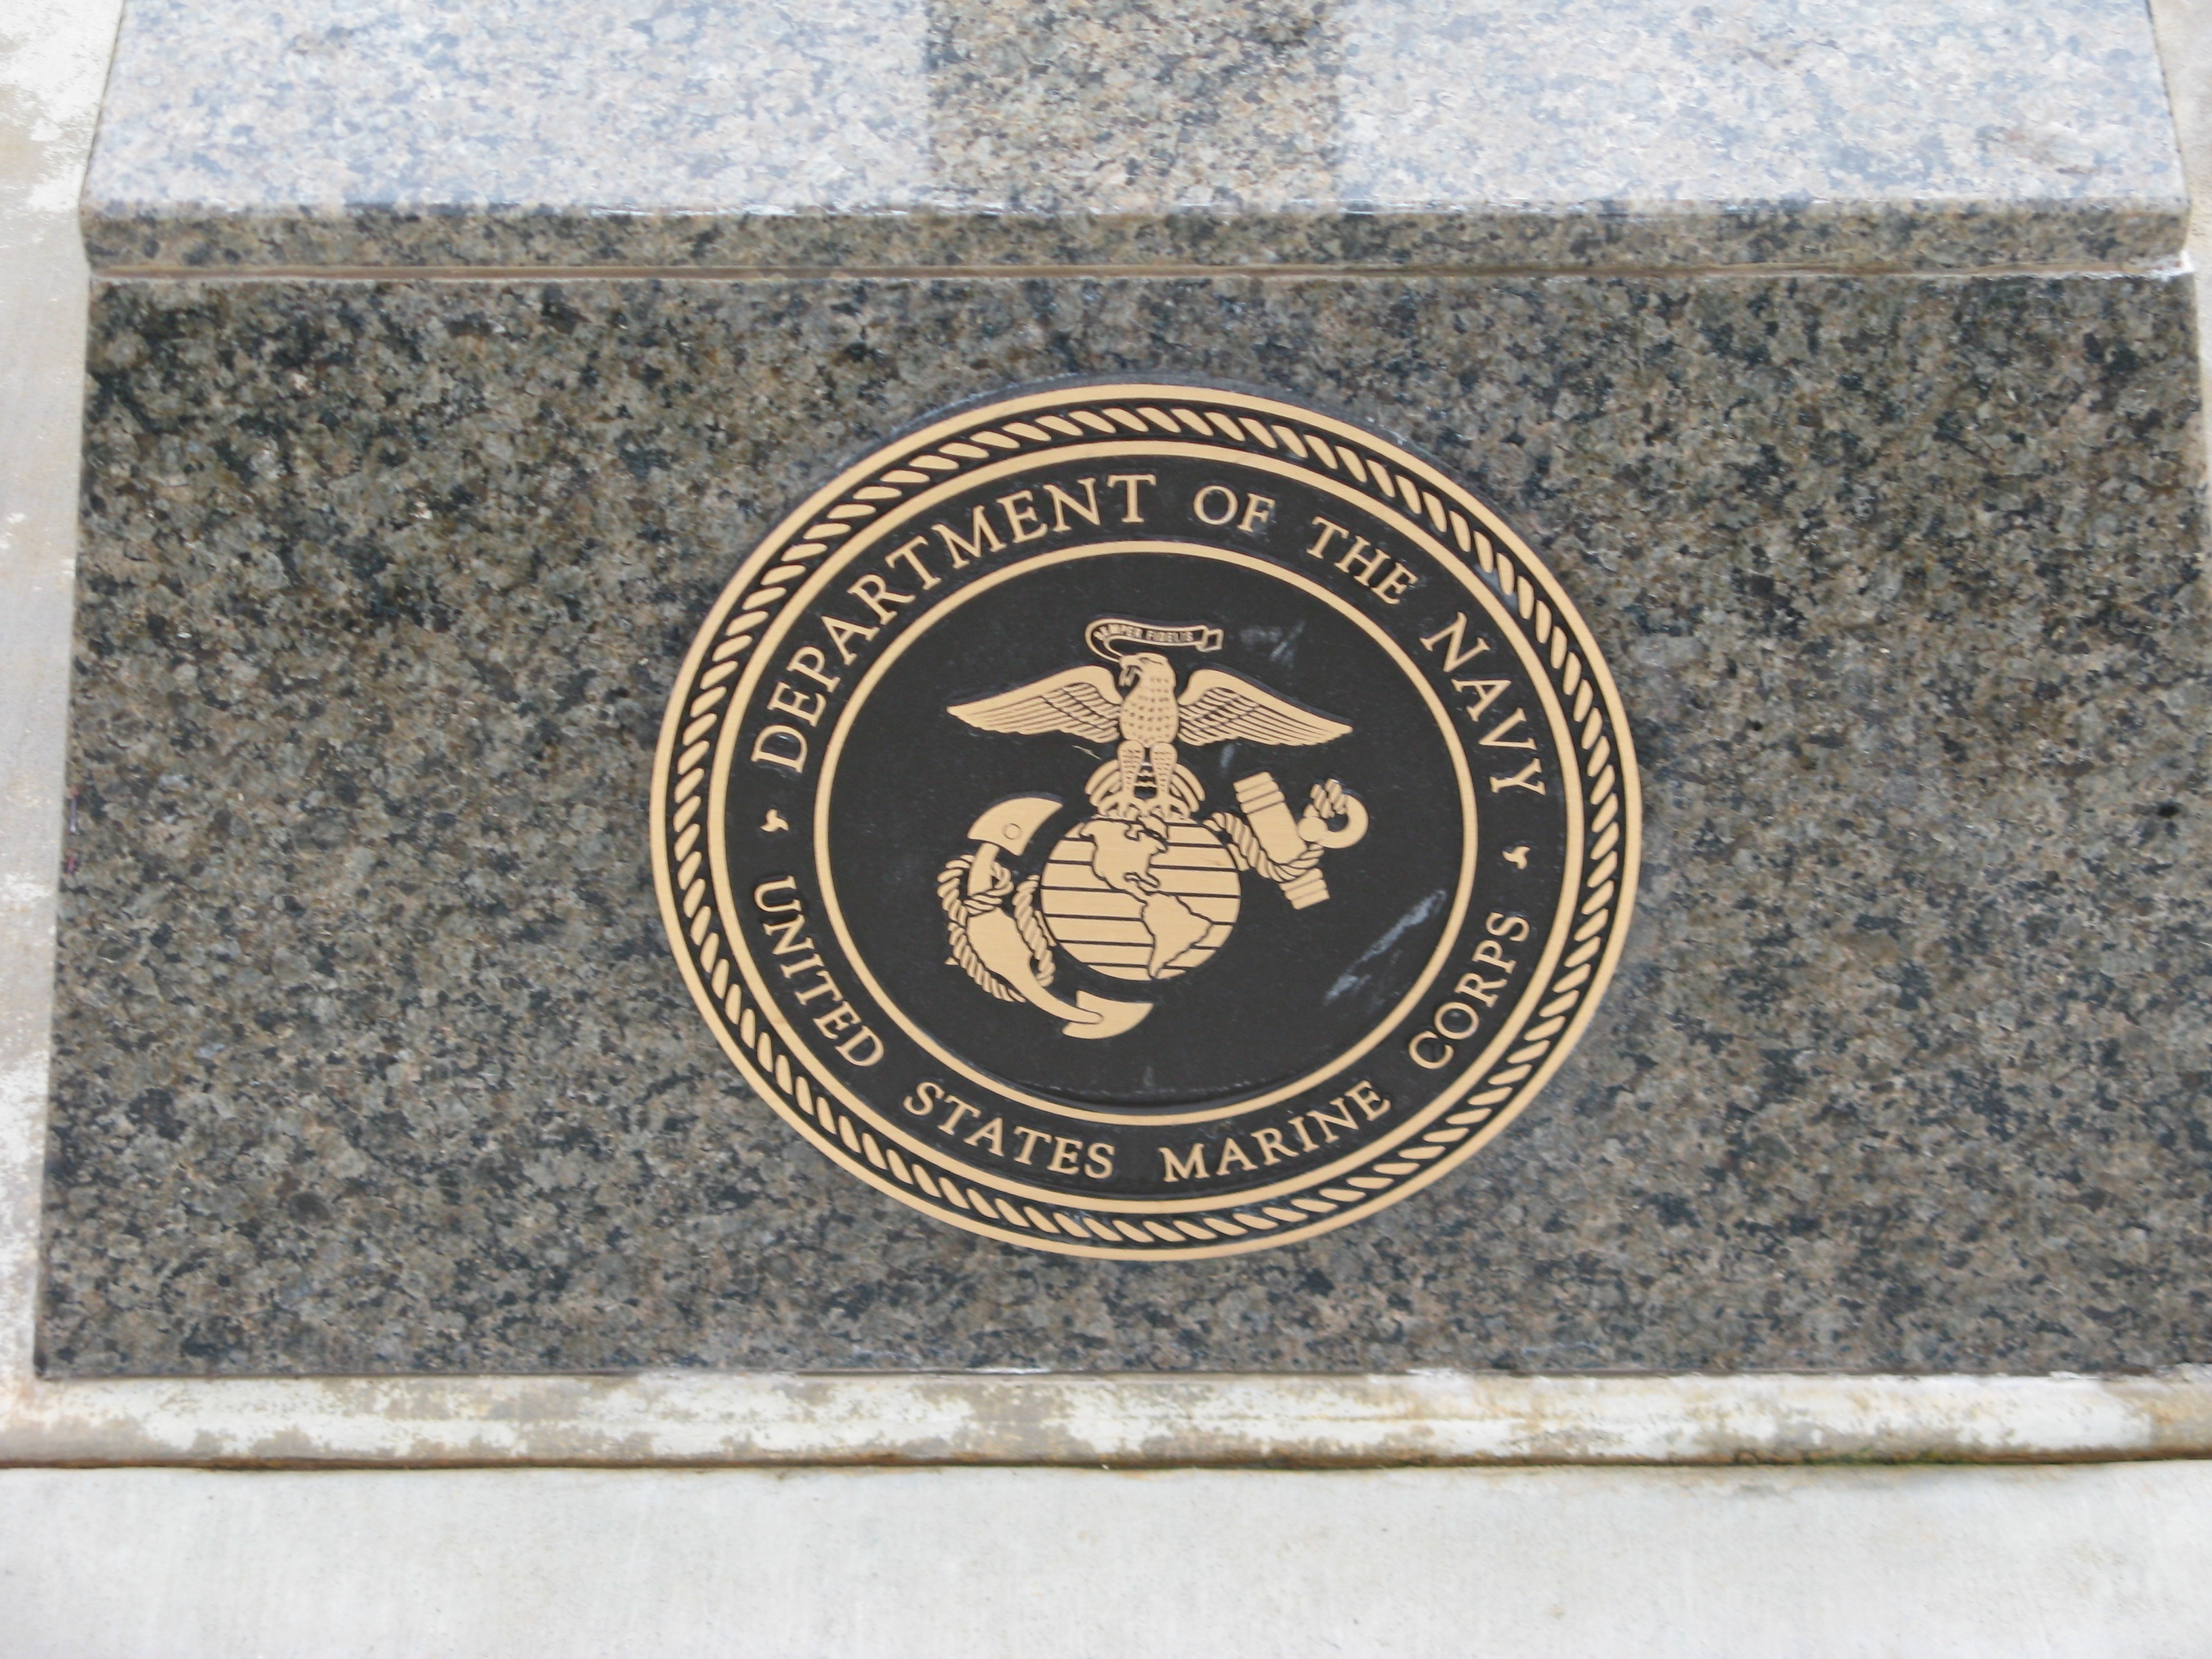 Department of the Navy - United States Marine Corp